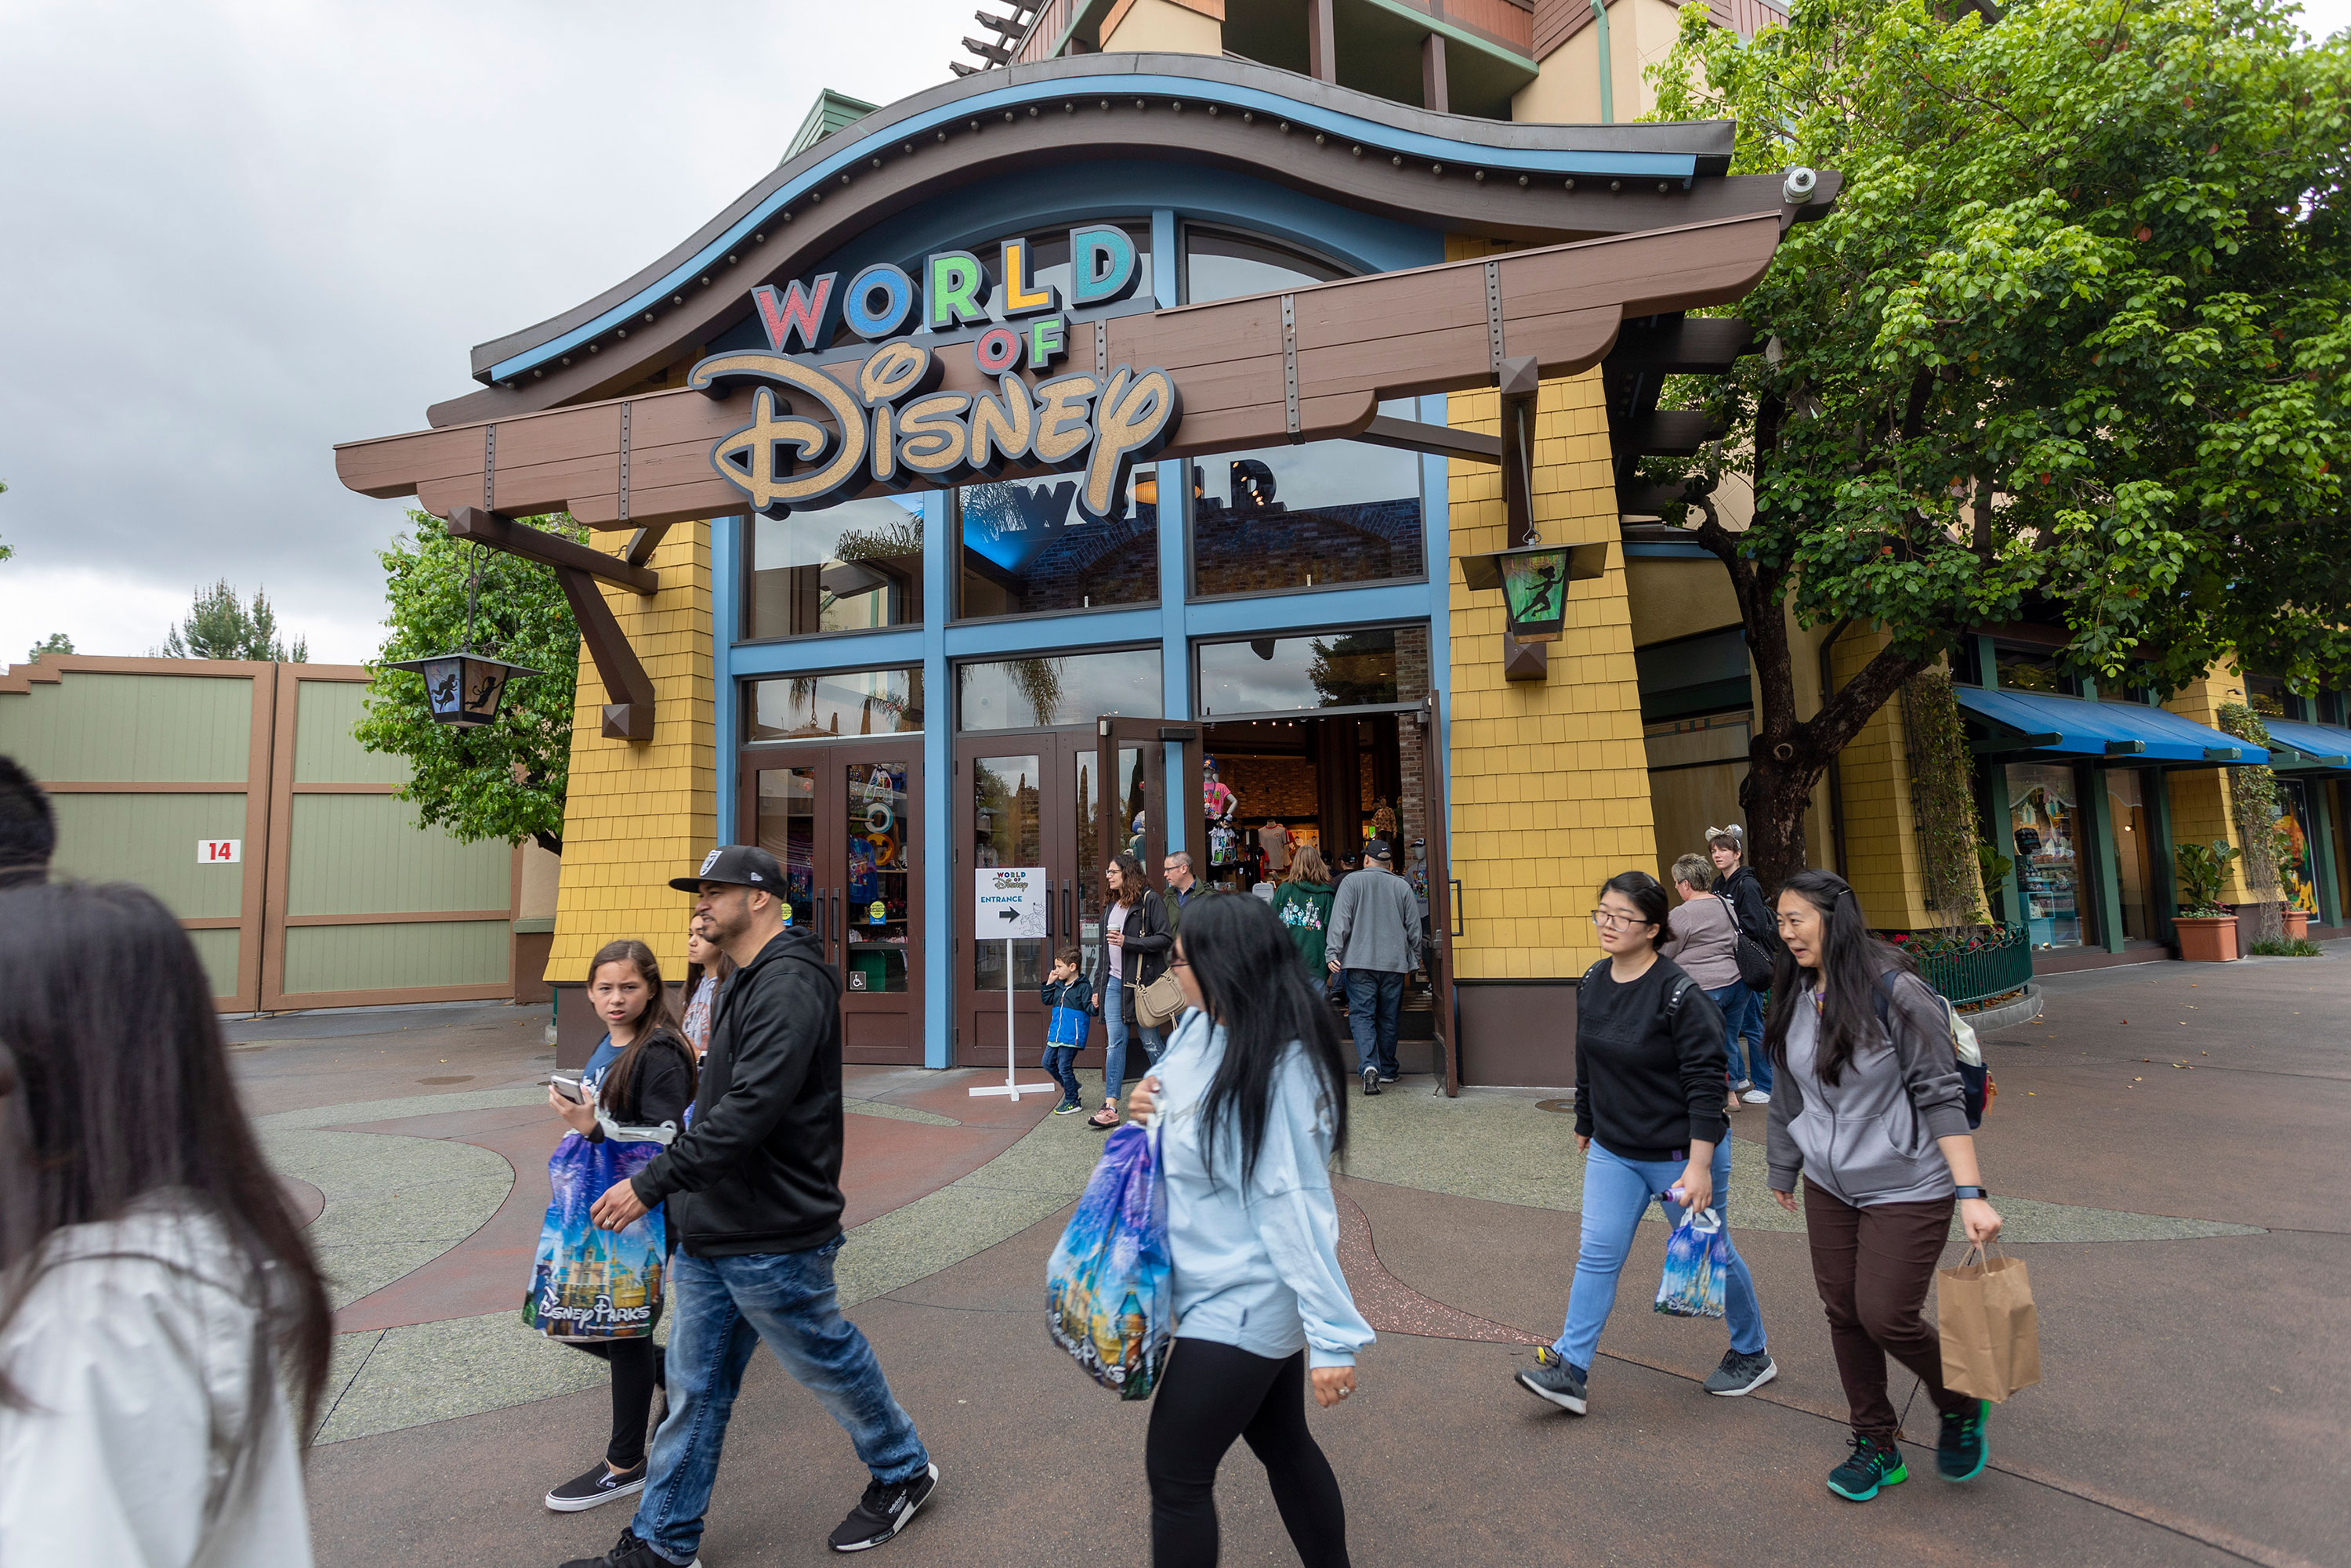 People walk near the World of Disney store in the Downtown Disney District shopping mall in Anaheim, California, on March 14.